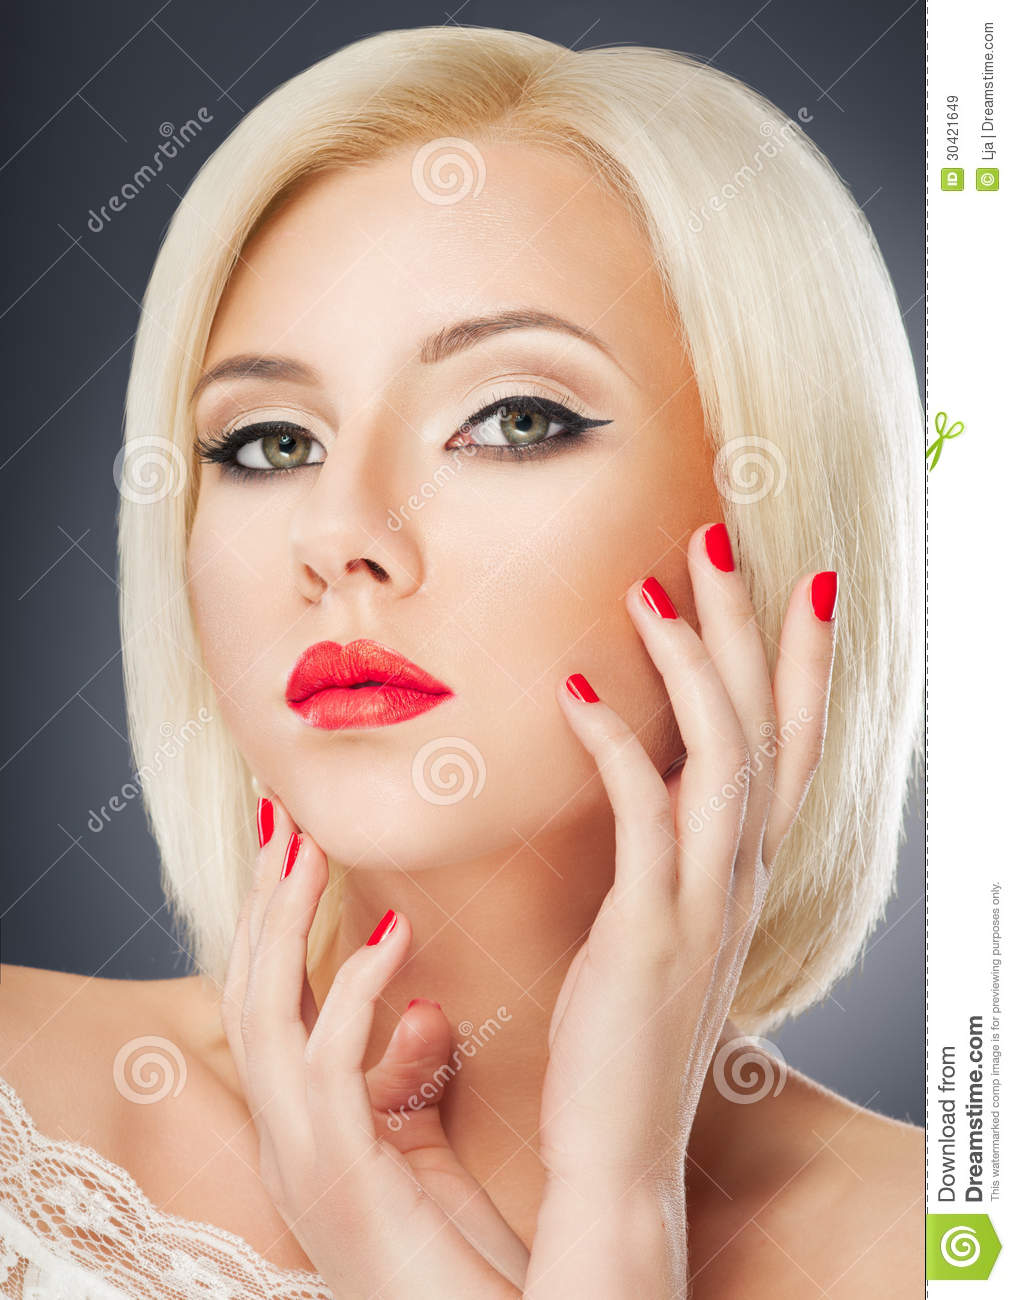 Woman Portrait Royalty Free Stock Images Image 30421649